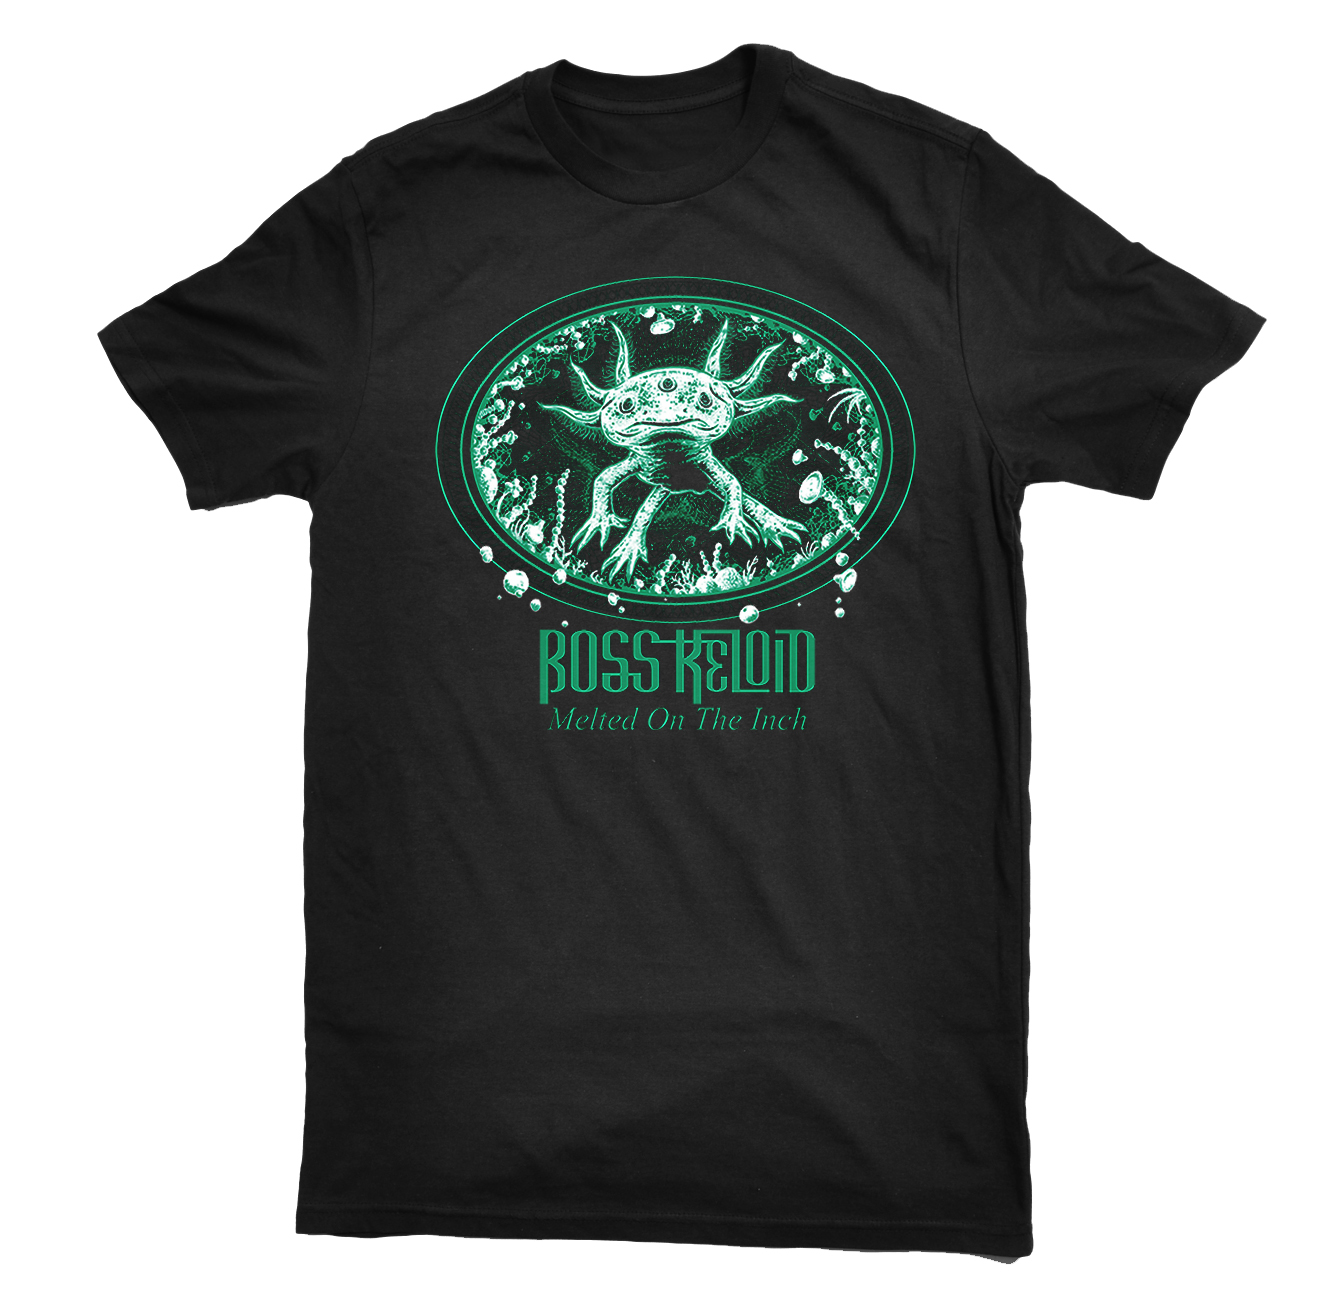 Boss Keloid - Melted On The Inch 'Axolotl' shirt